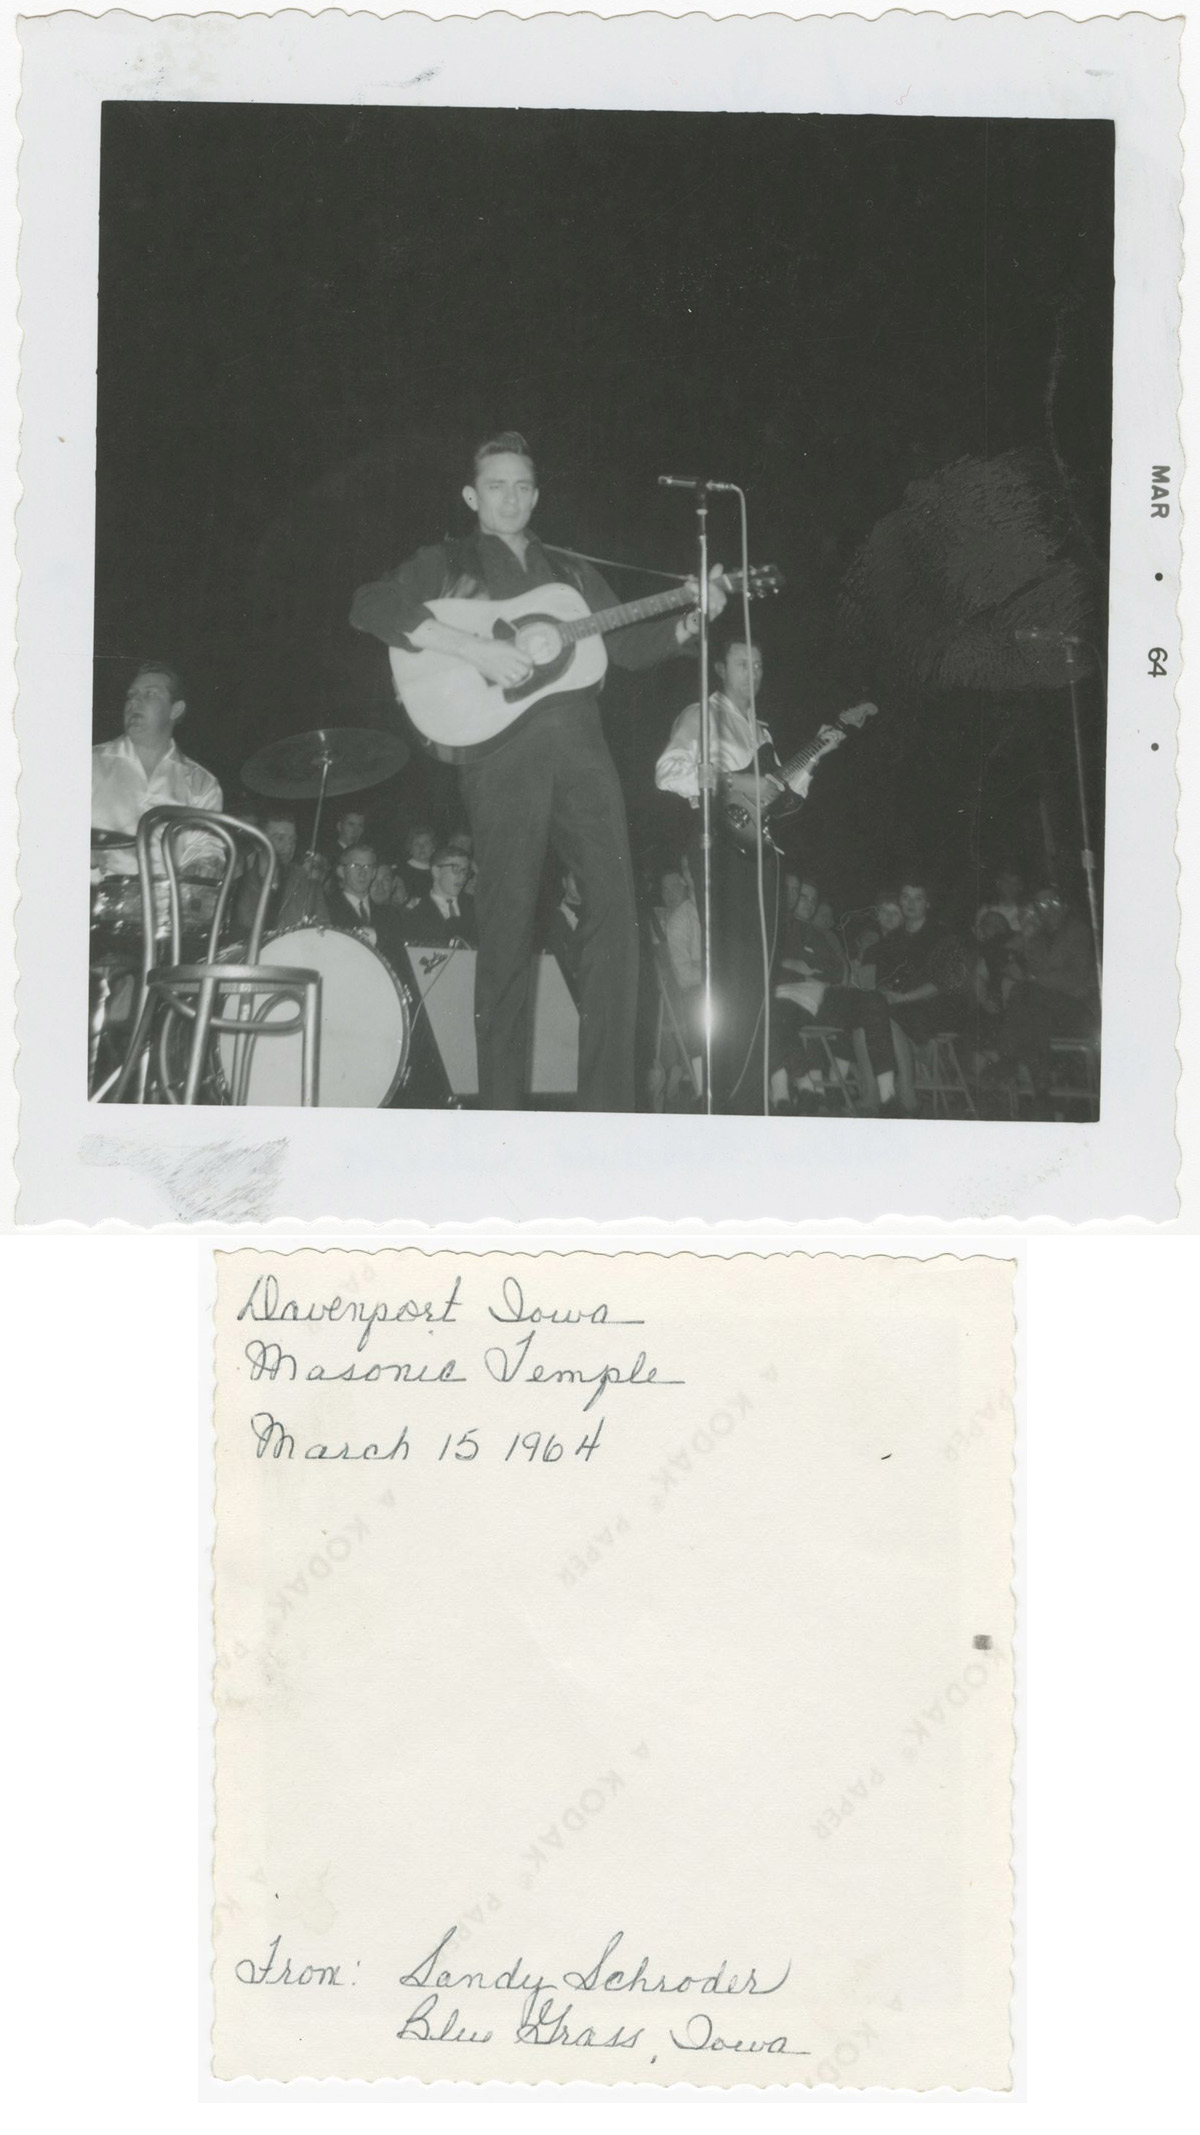 Johnny Cash performs at Masonic Temple in Davenport, Iowa on March 15, 1964